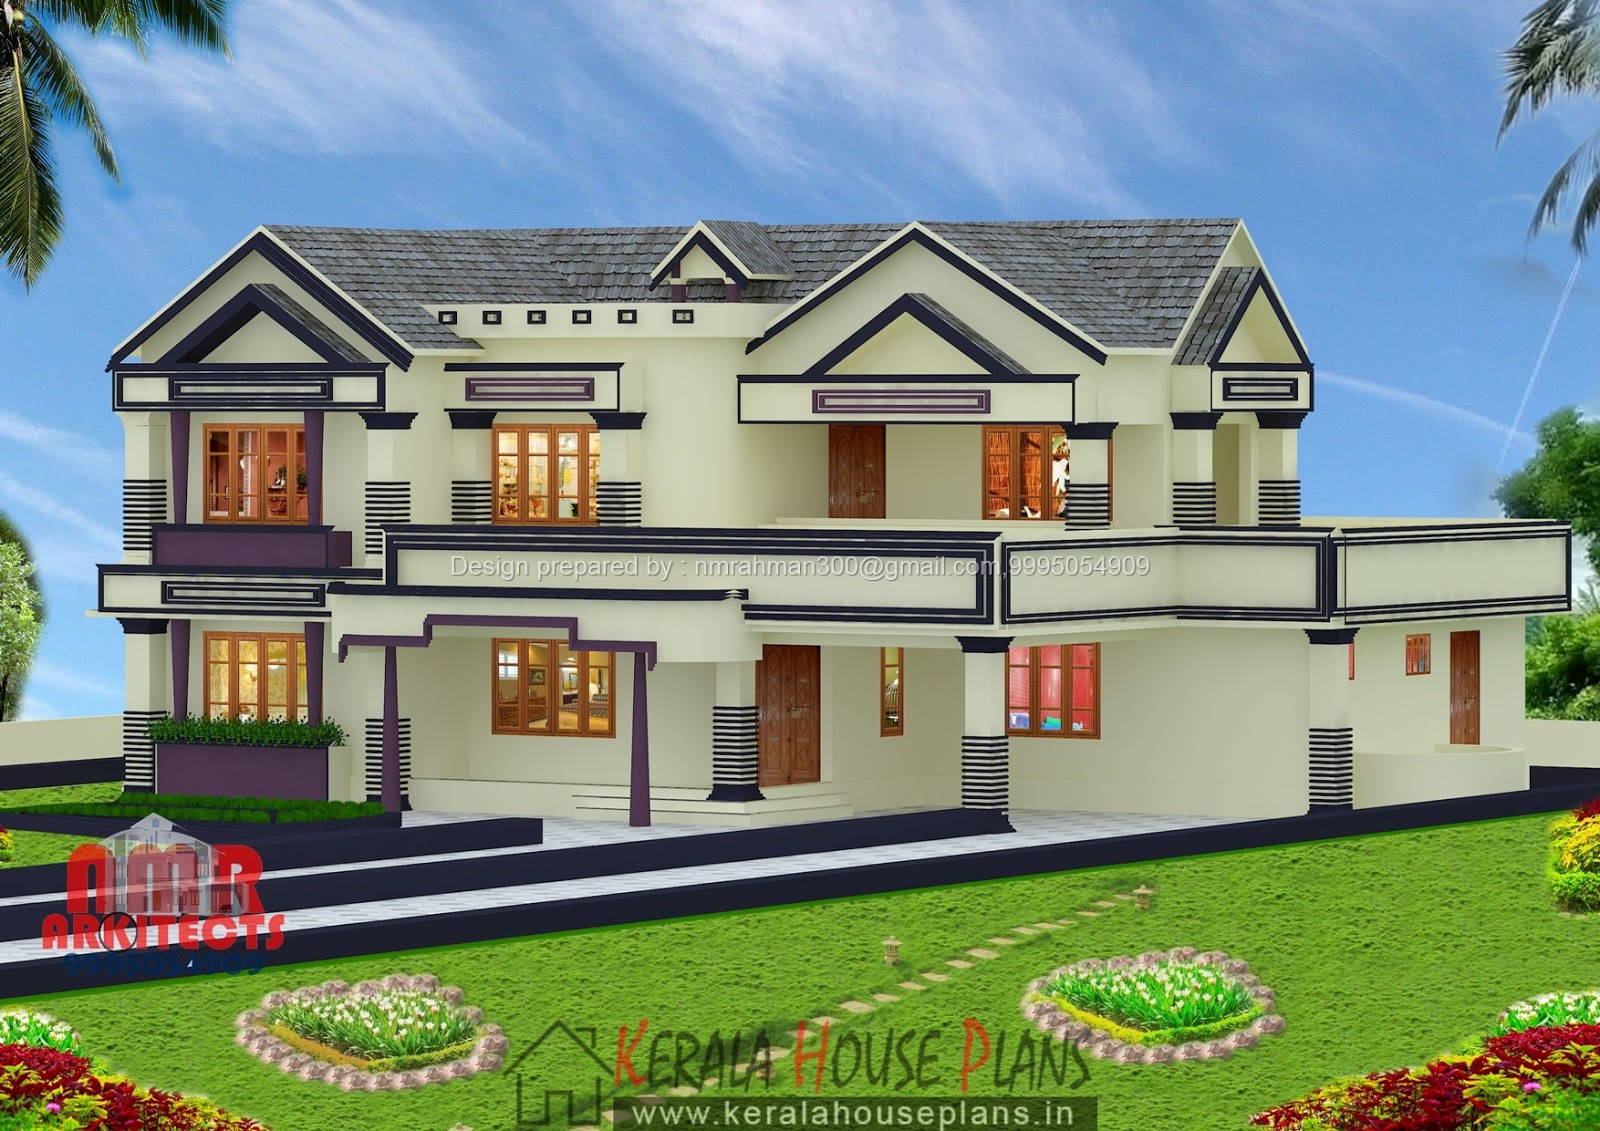 Kerala house plans above 3000 sq ft kerala house plans for 3000 square foot home